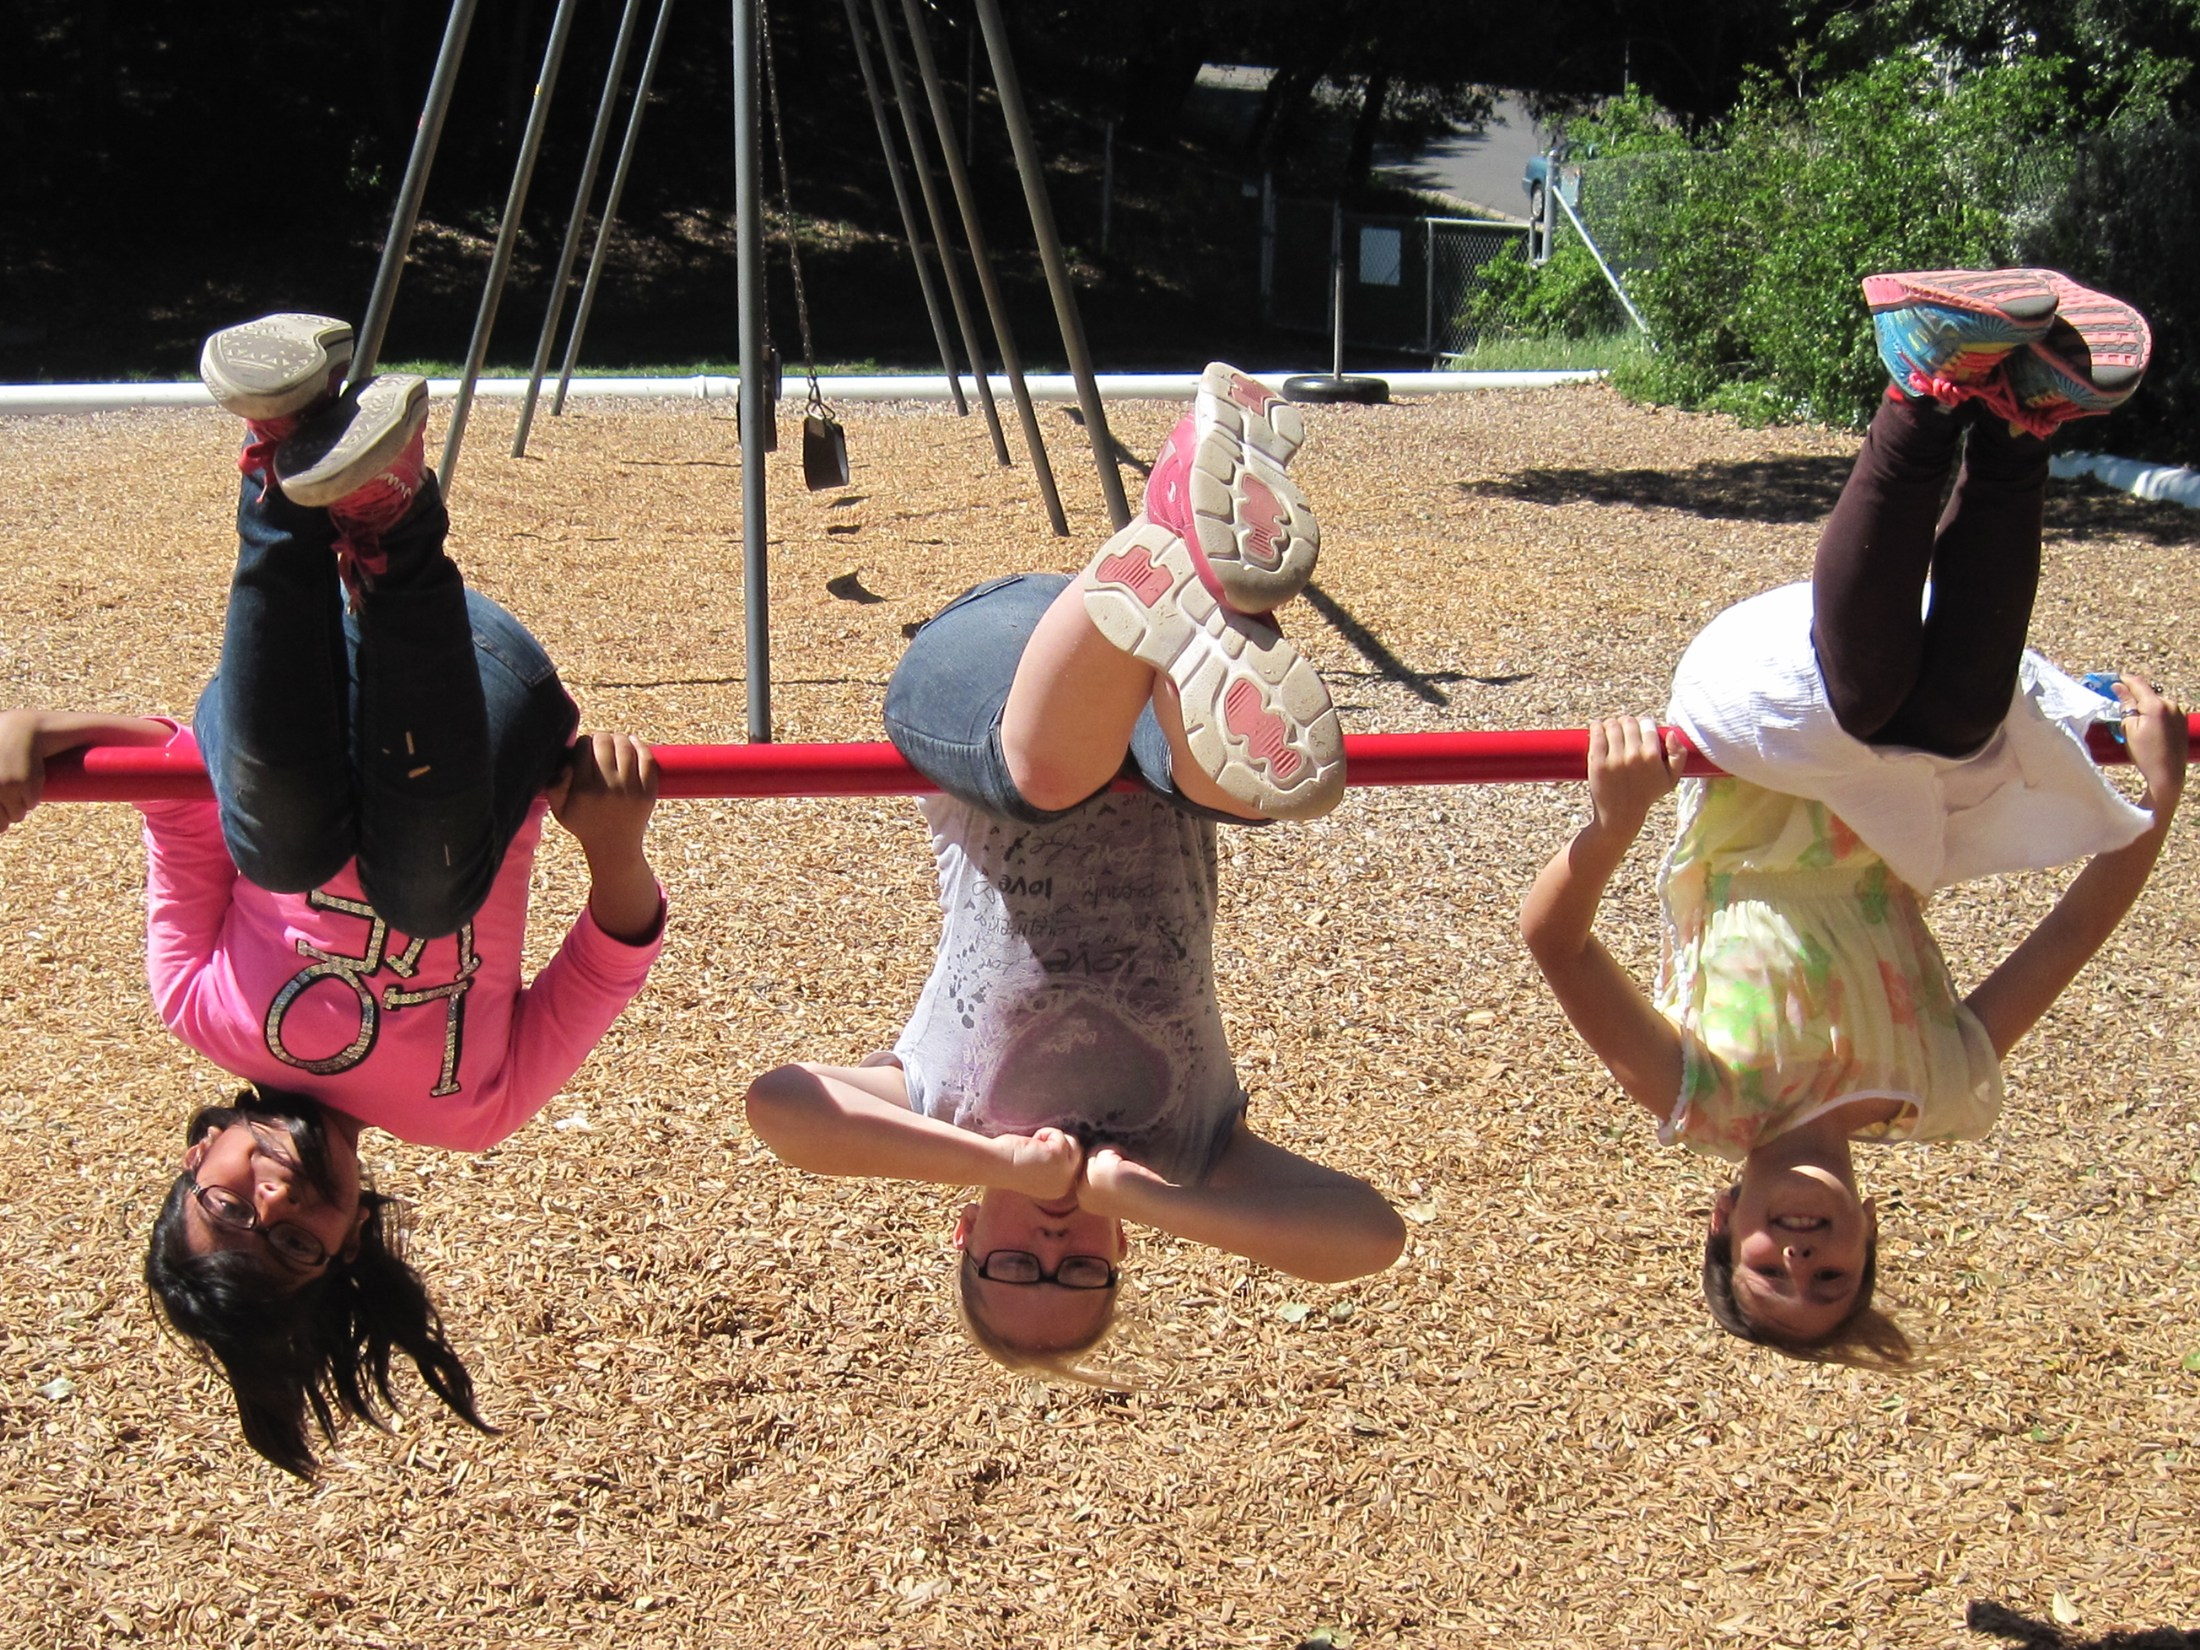 Students hanging upside down